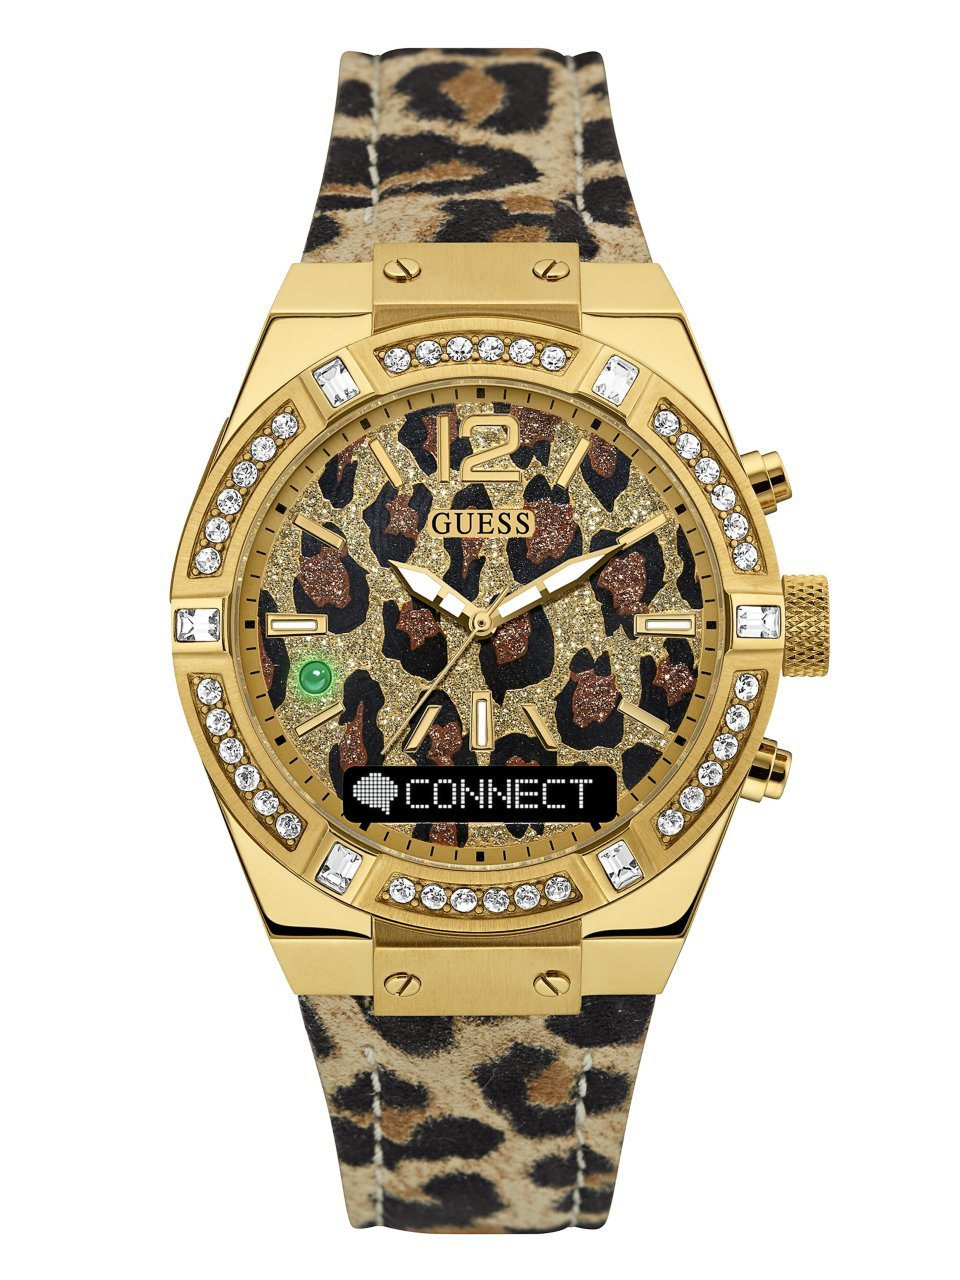 GUESS Women's CONNECT Smartwatch with Amazon Alexa and Genuine Leather Strap Buckle - iOS and Android Compatible -  Gold